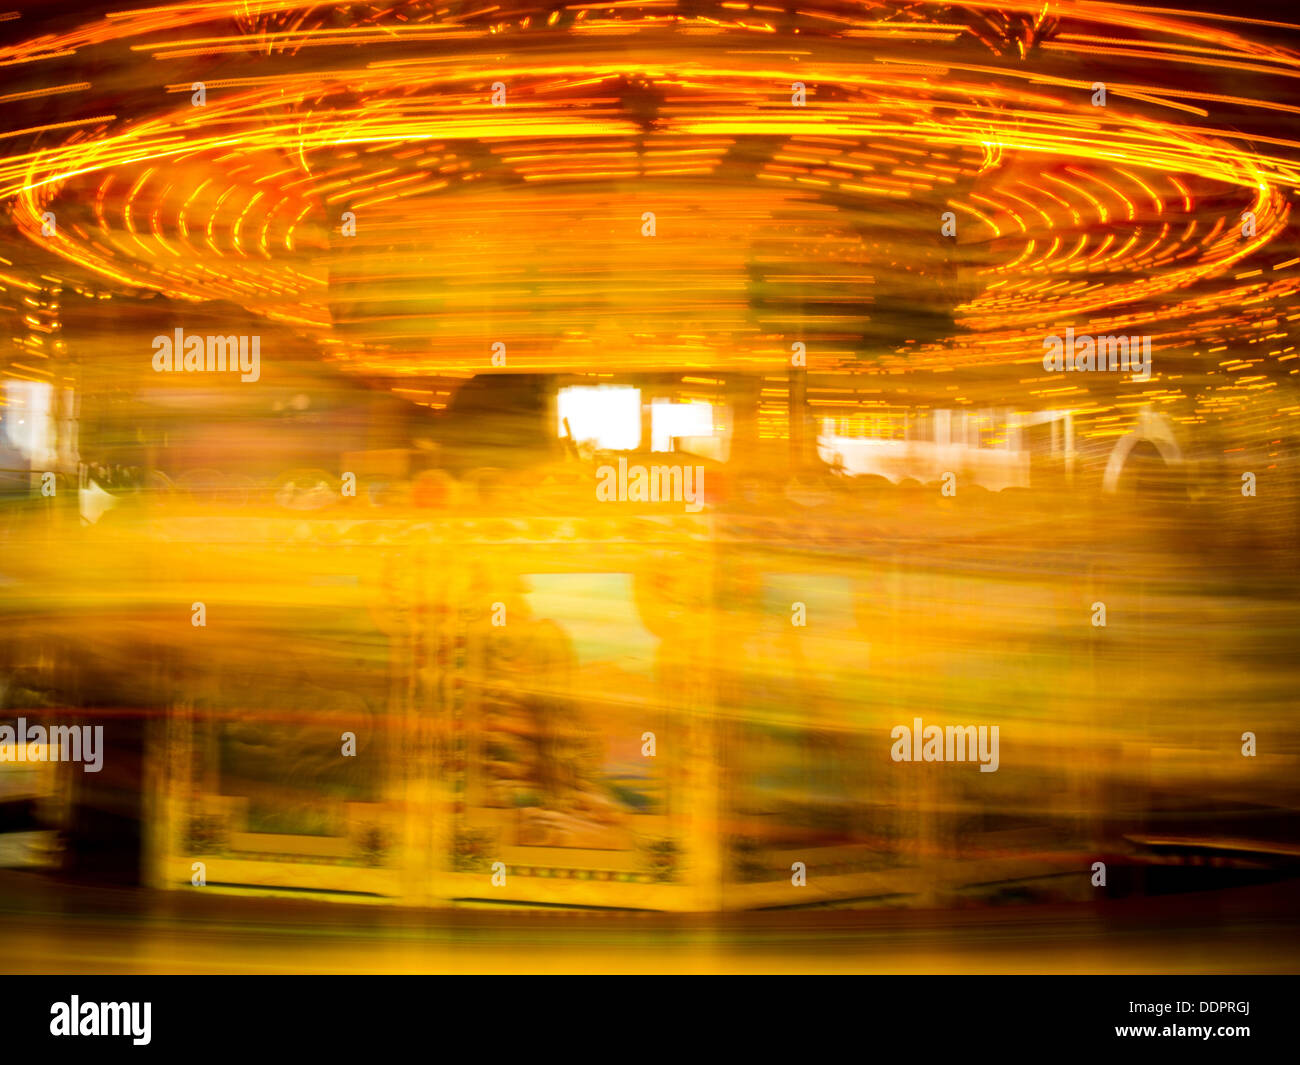 An abstract image of an illuminated carousel at speed Stock Photo